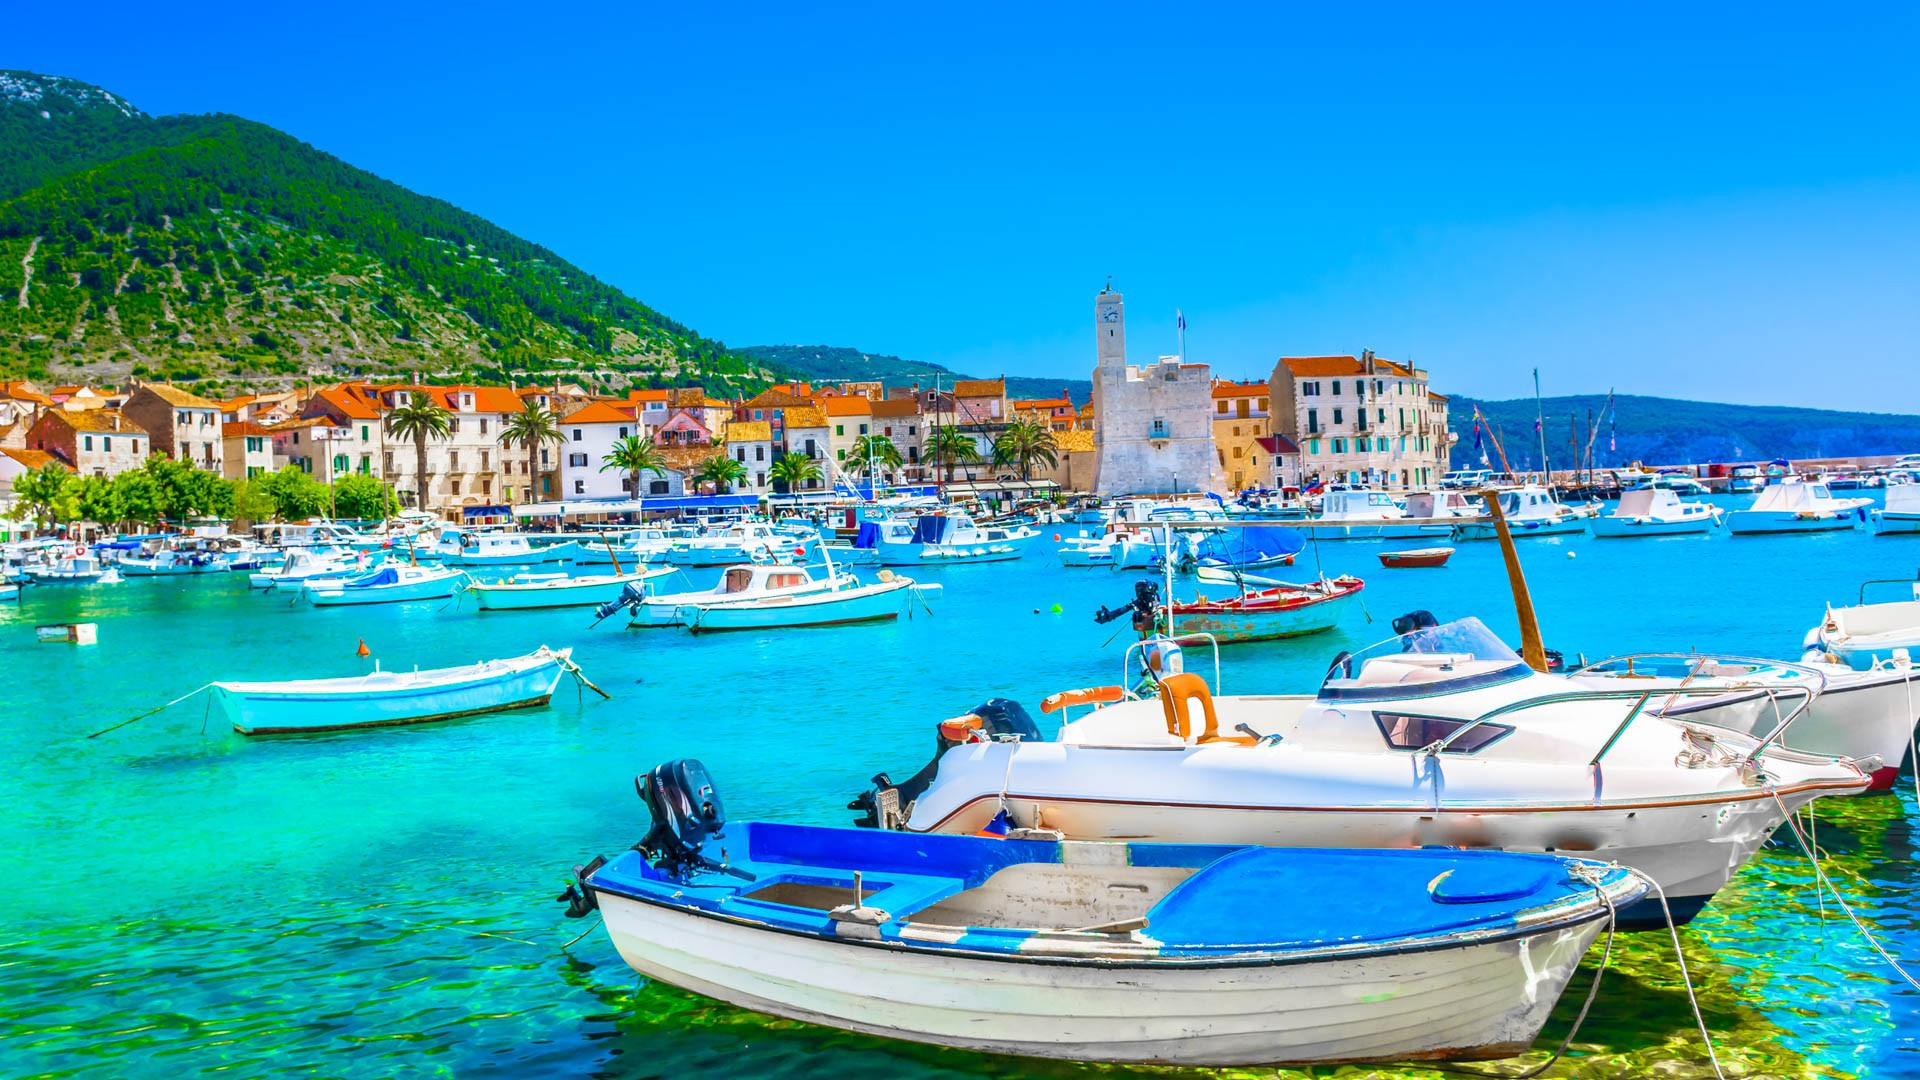 Vis - Adriatic Sea | Croatia Cruise Croatia Cruise